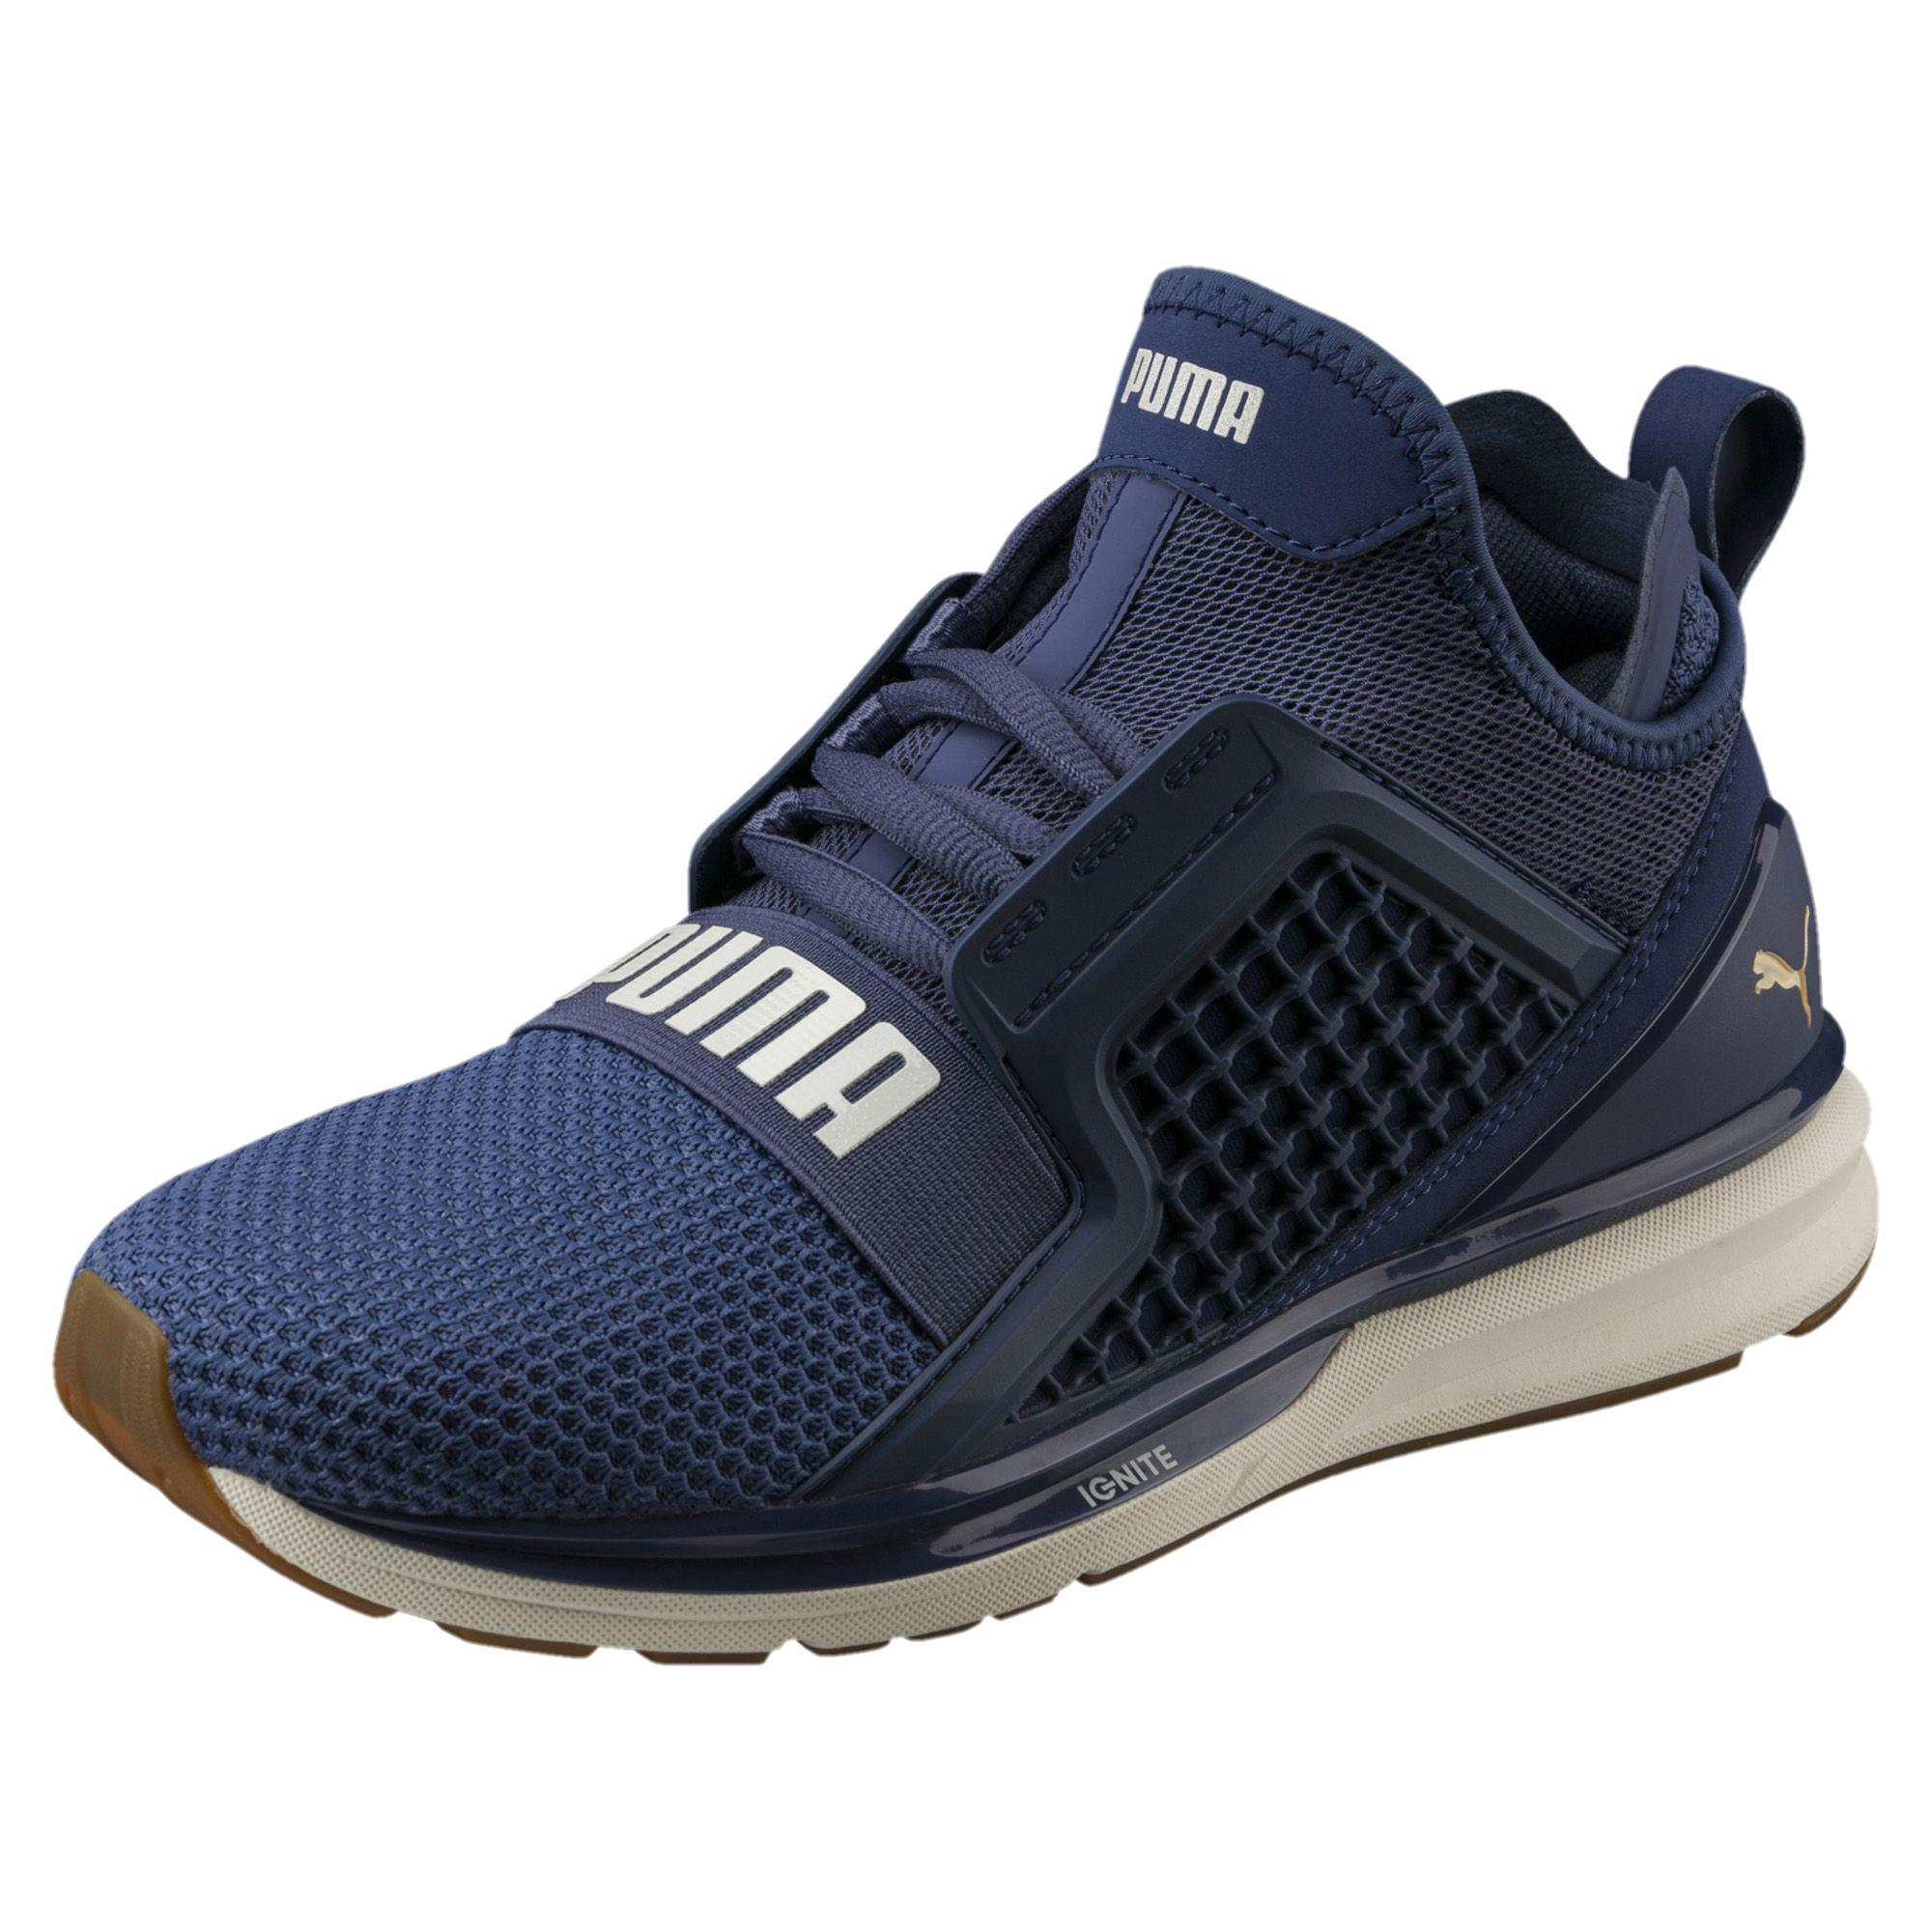 f997d5f0a80b27 Lyst - PUMA Ignite Limitless Weave Women s Running Shoes in Blue